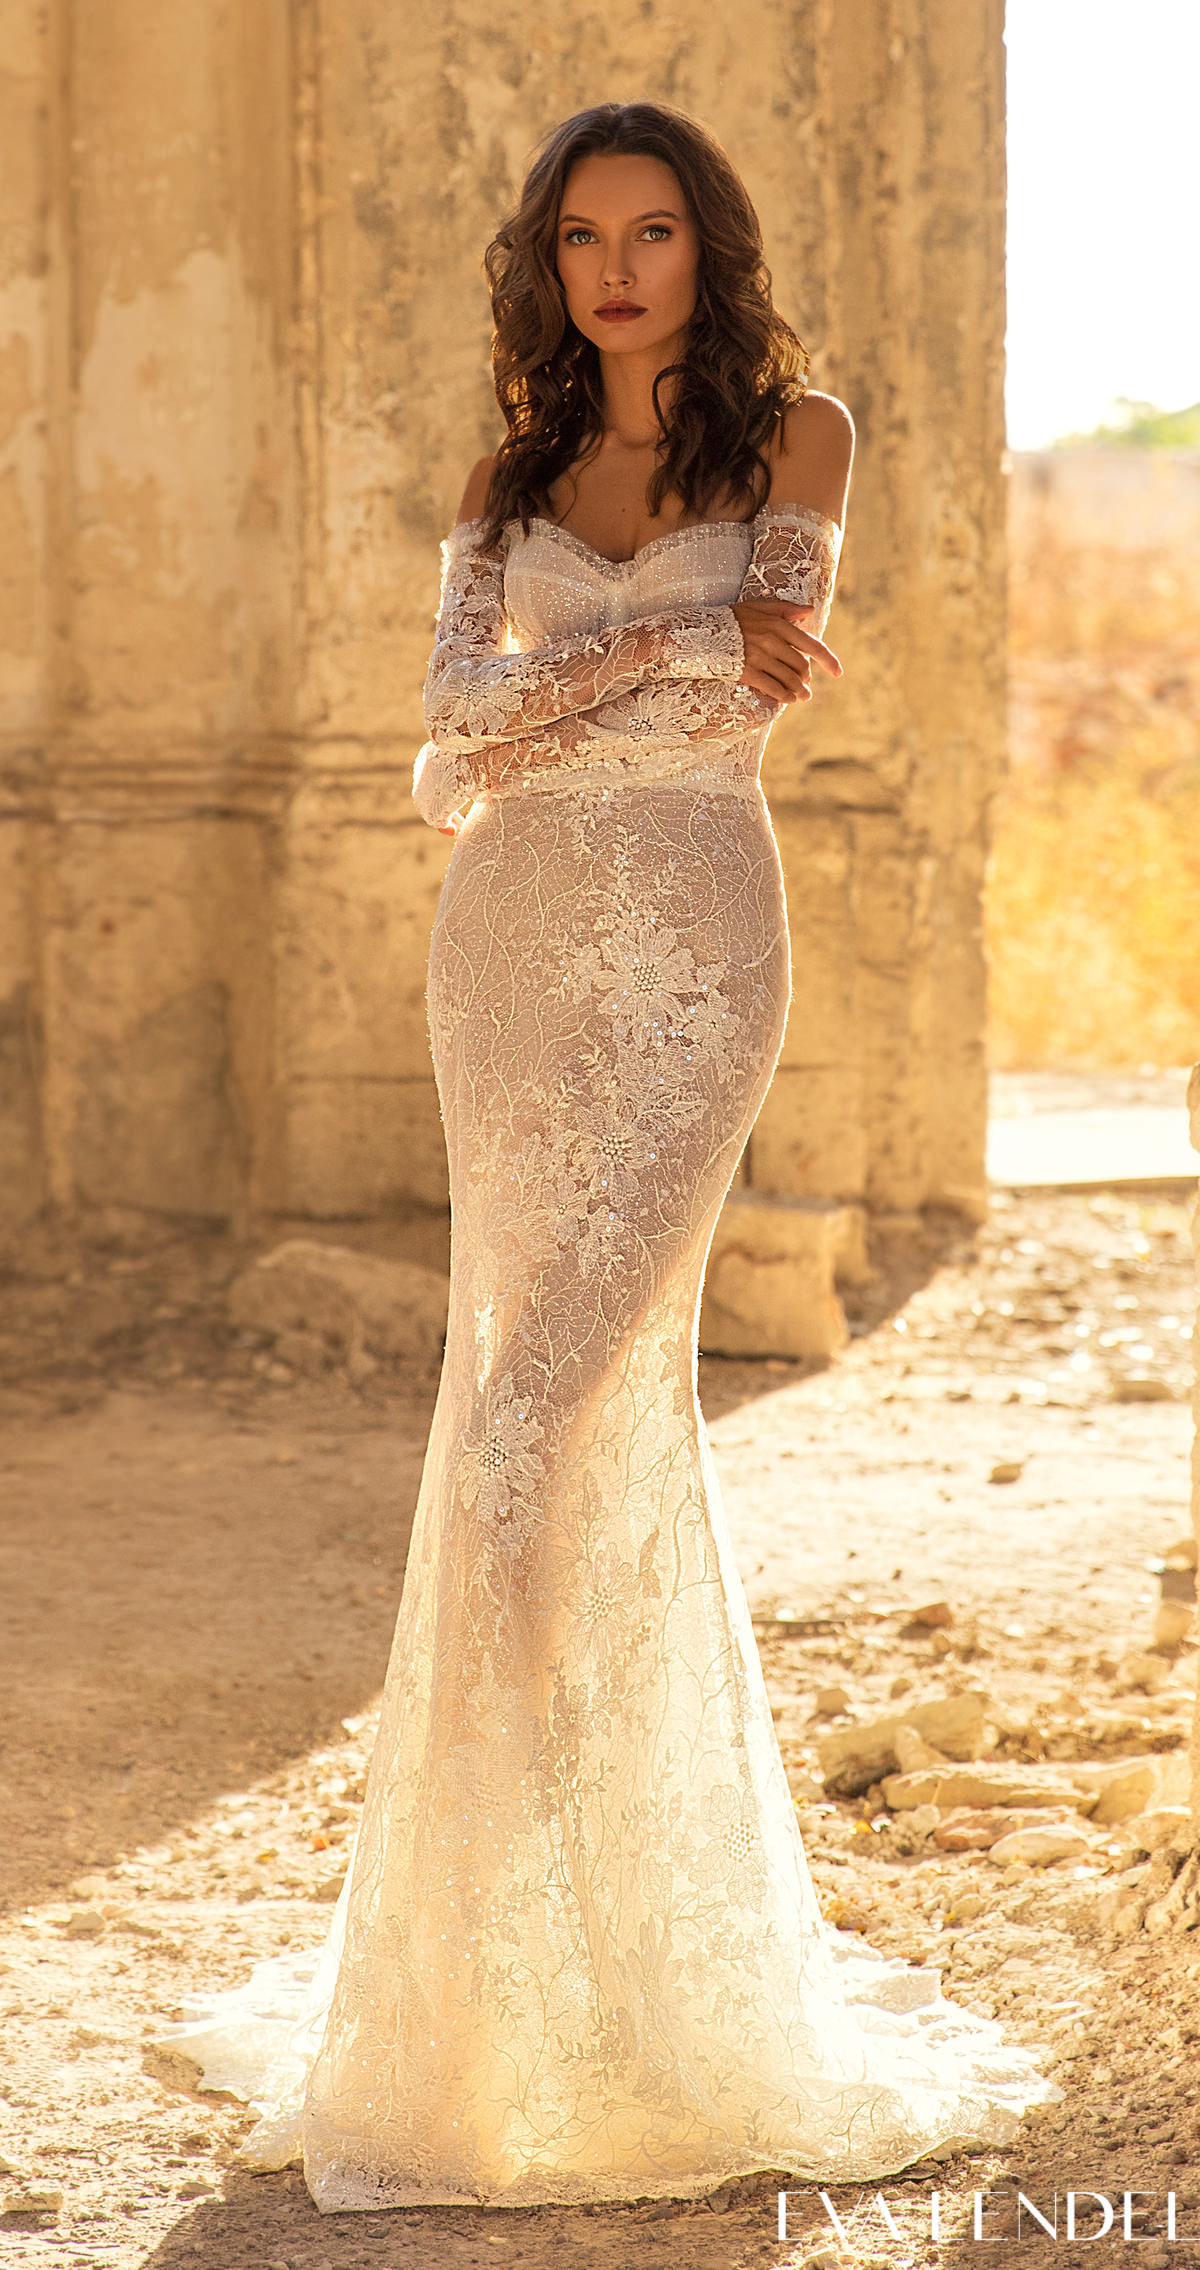 Eva Lendel Wedding Dresses 2021- Golden Hour Collection -Gwen